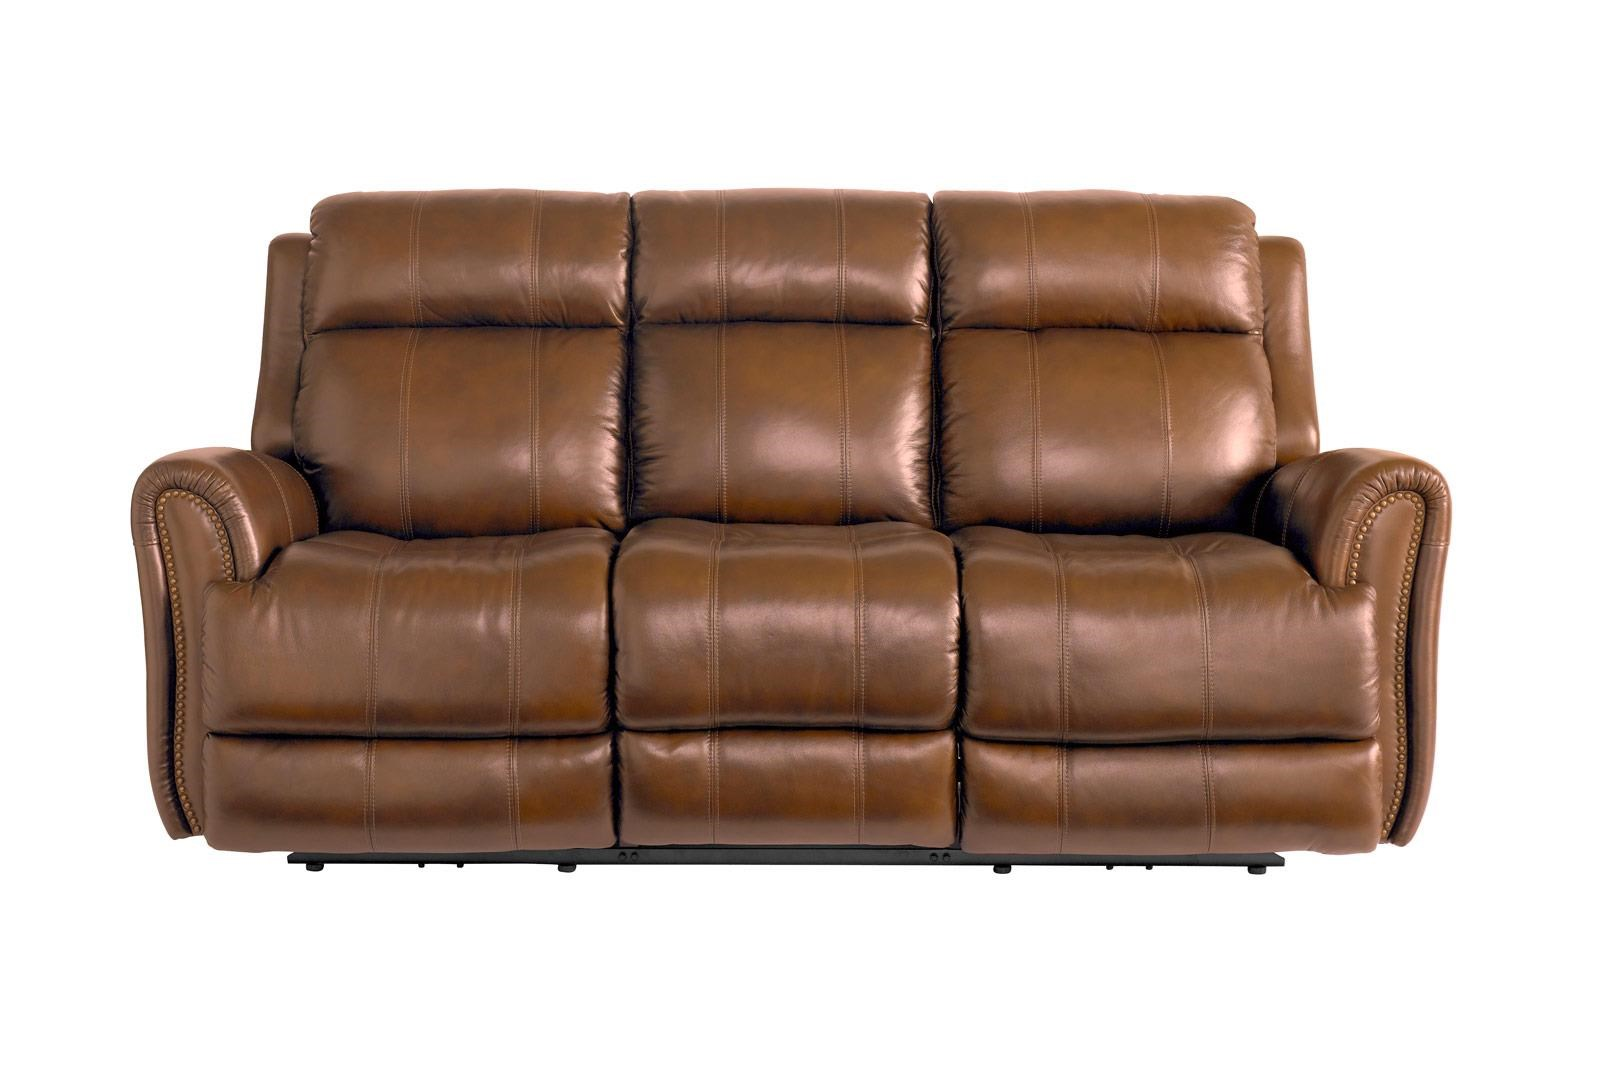 Leather Pwr Reclining Sofa w/Pwr Headrest